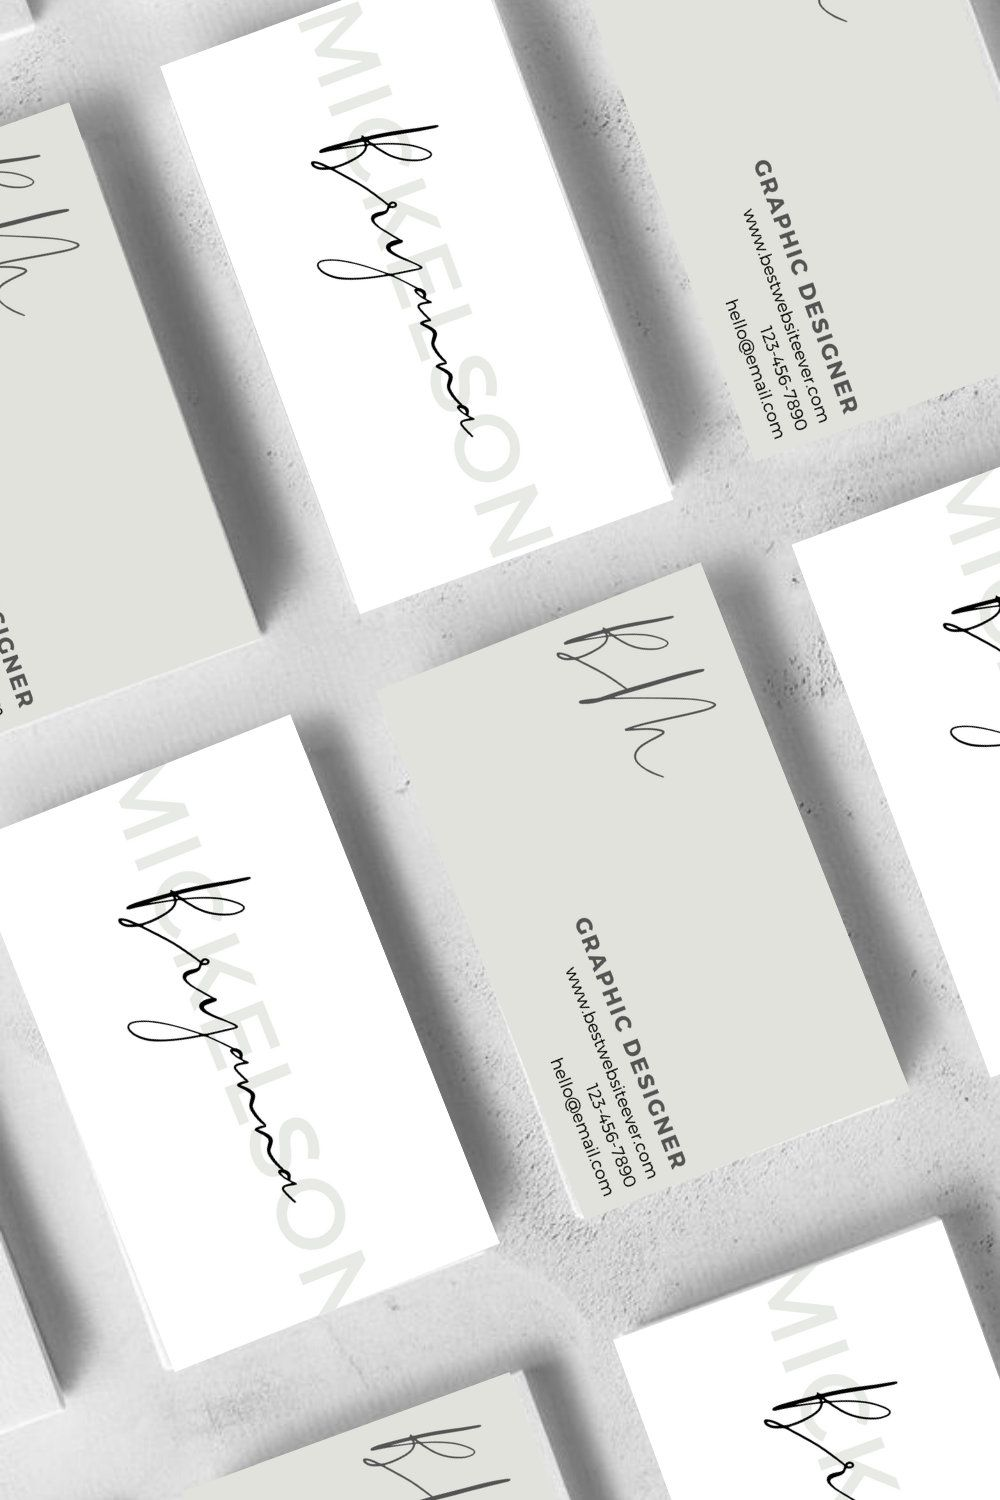 Are You A Business Owner Do You Want To Stand Out Business Cards Are A Great Way To Make P Name Card Design Printing Business Cards Business Card Inspiration